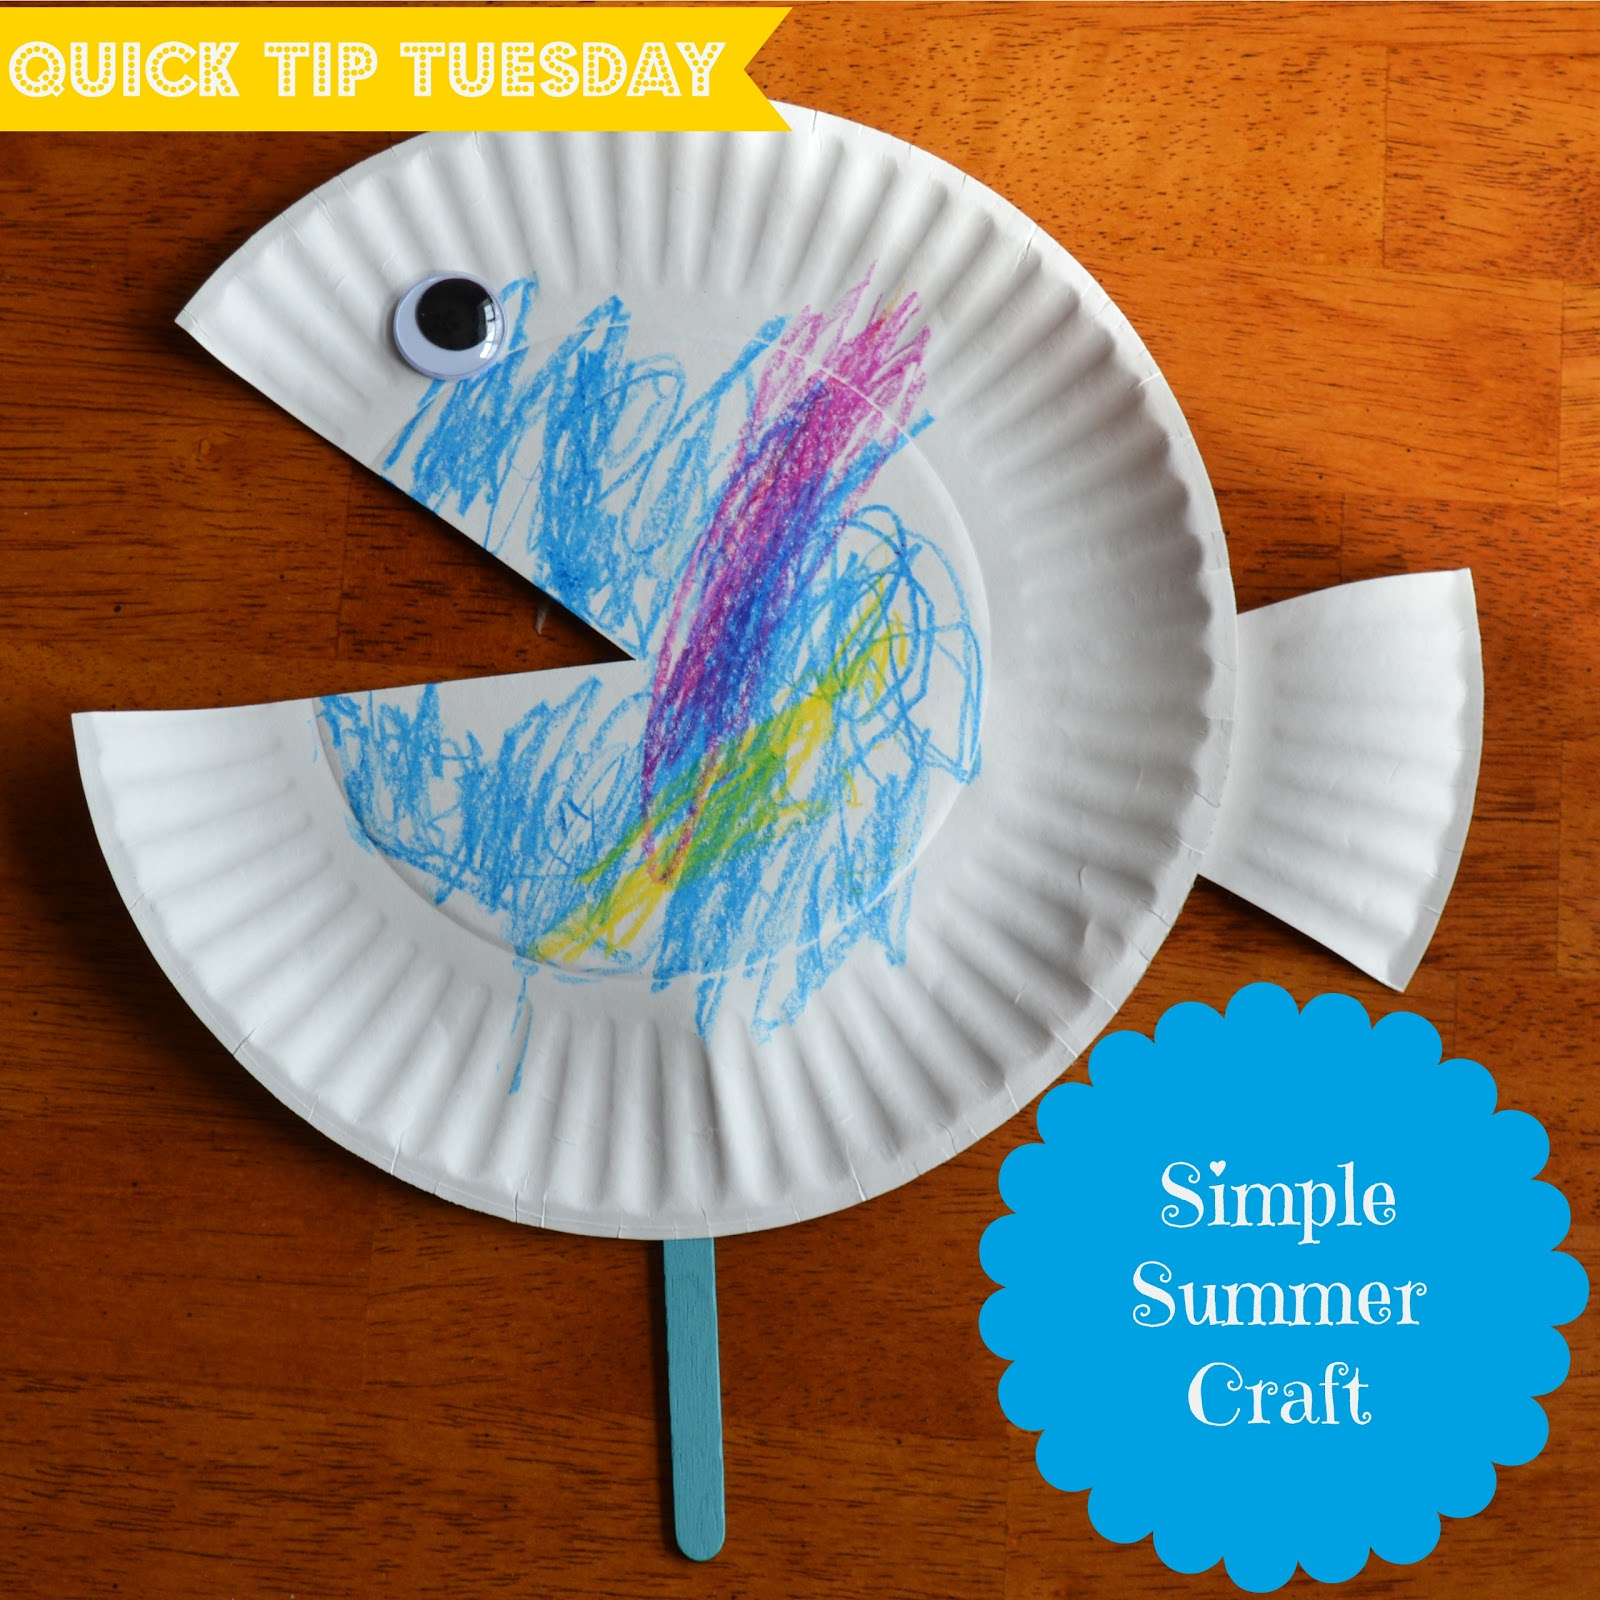 East coast mommy quick tip tuesday 5 simple summer craft for Art and craft with paper easy